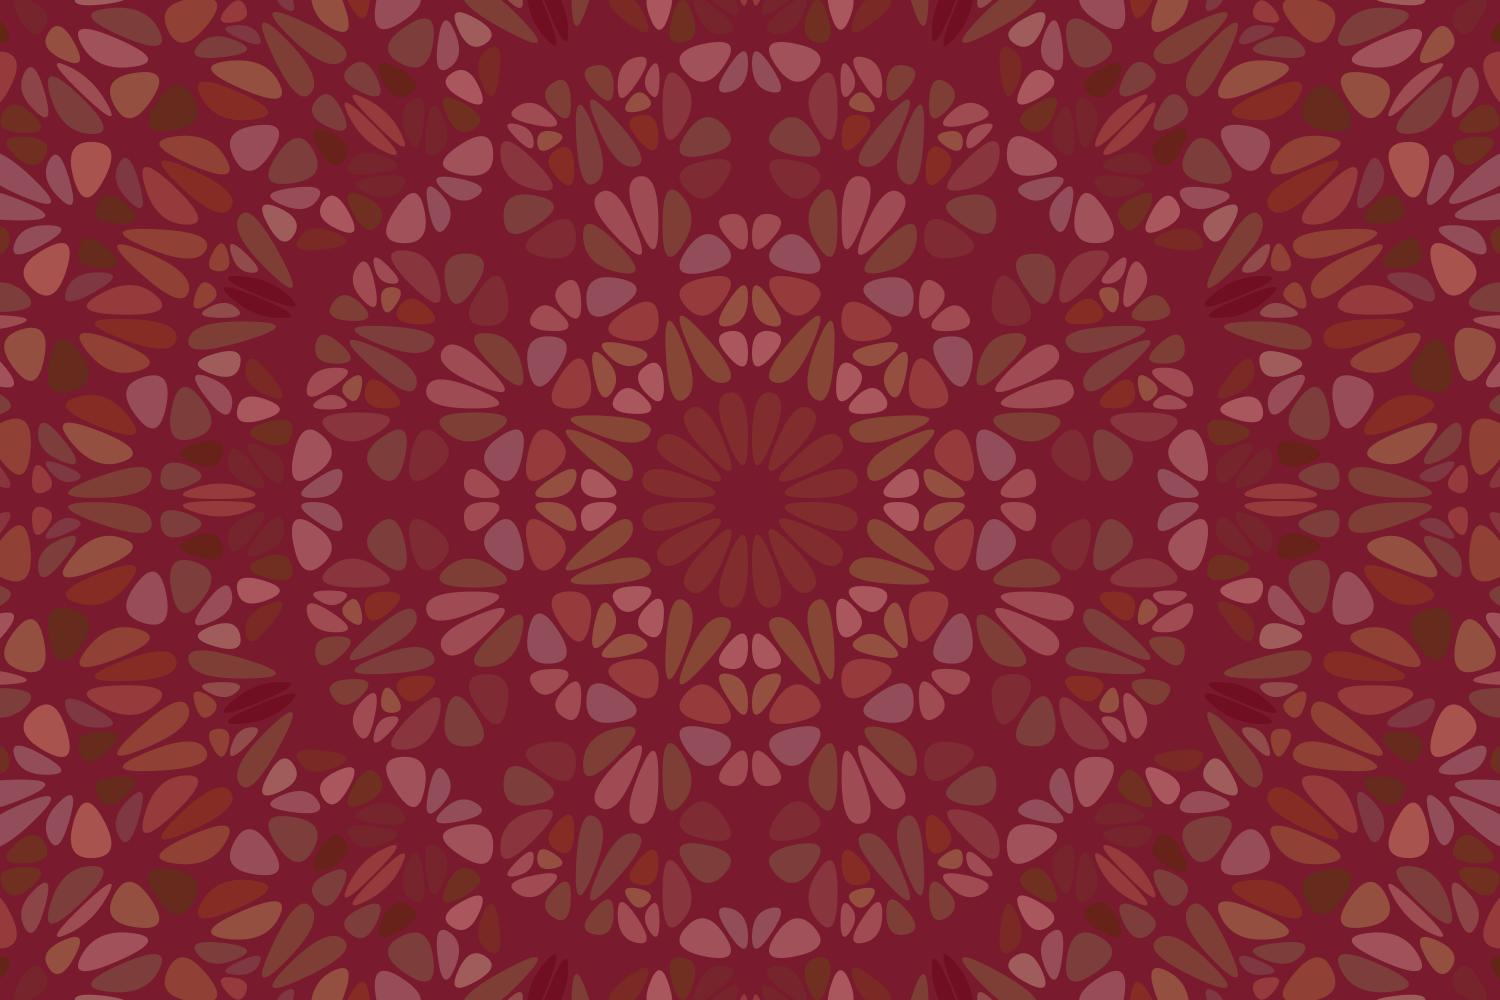 Download Free Floral Mandala Background Graphic By Davidzydd Creative Fabrica for Cricut Explore, Silhouette and other cutting machines.